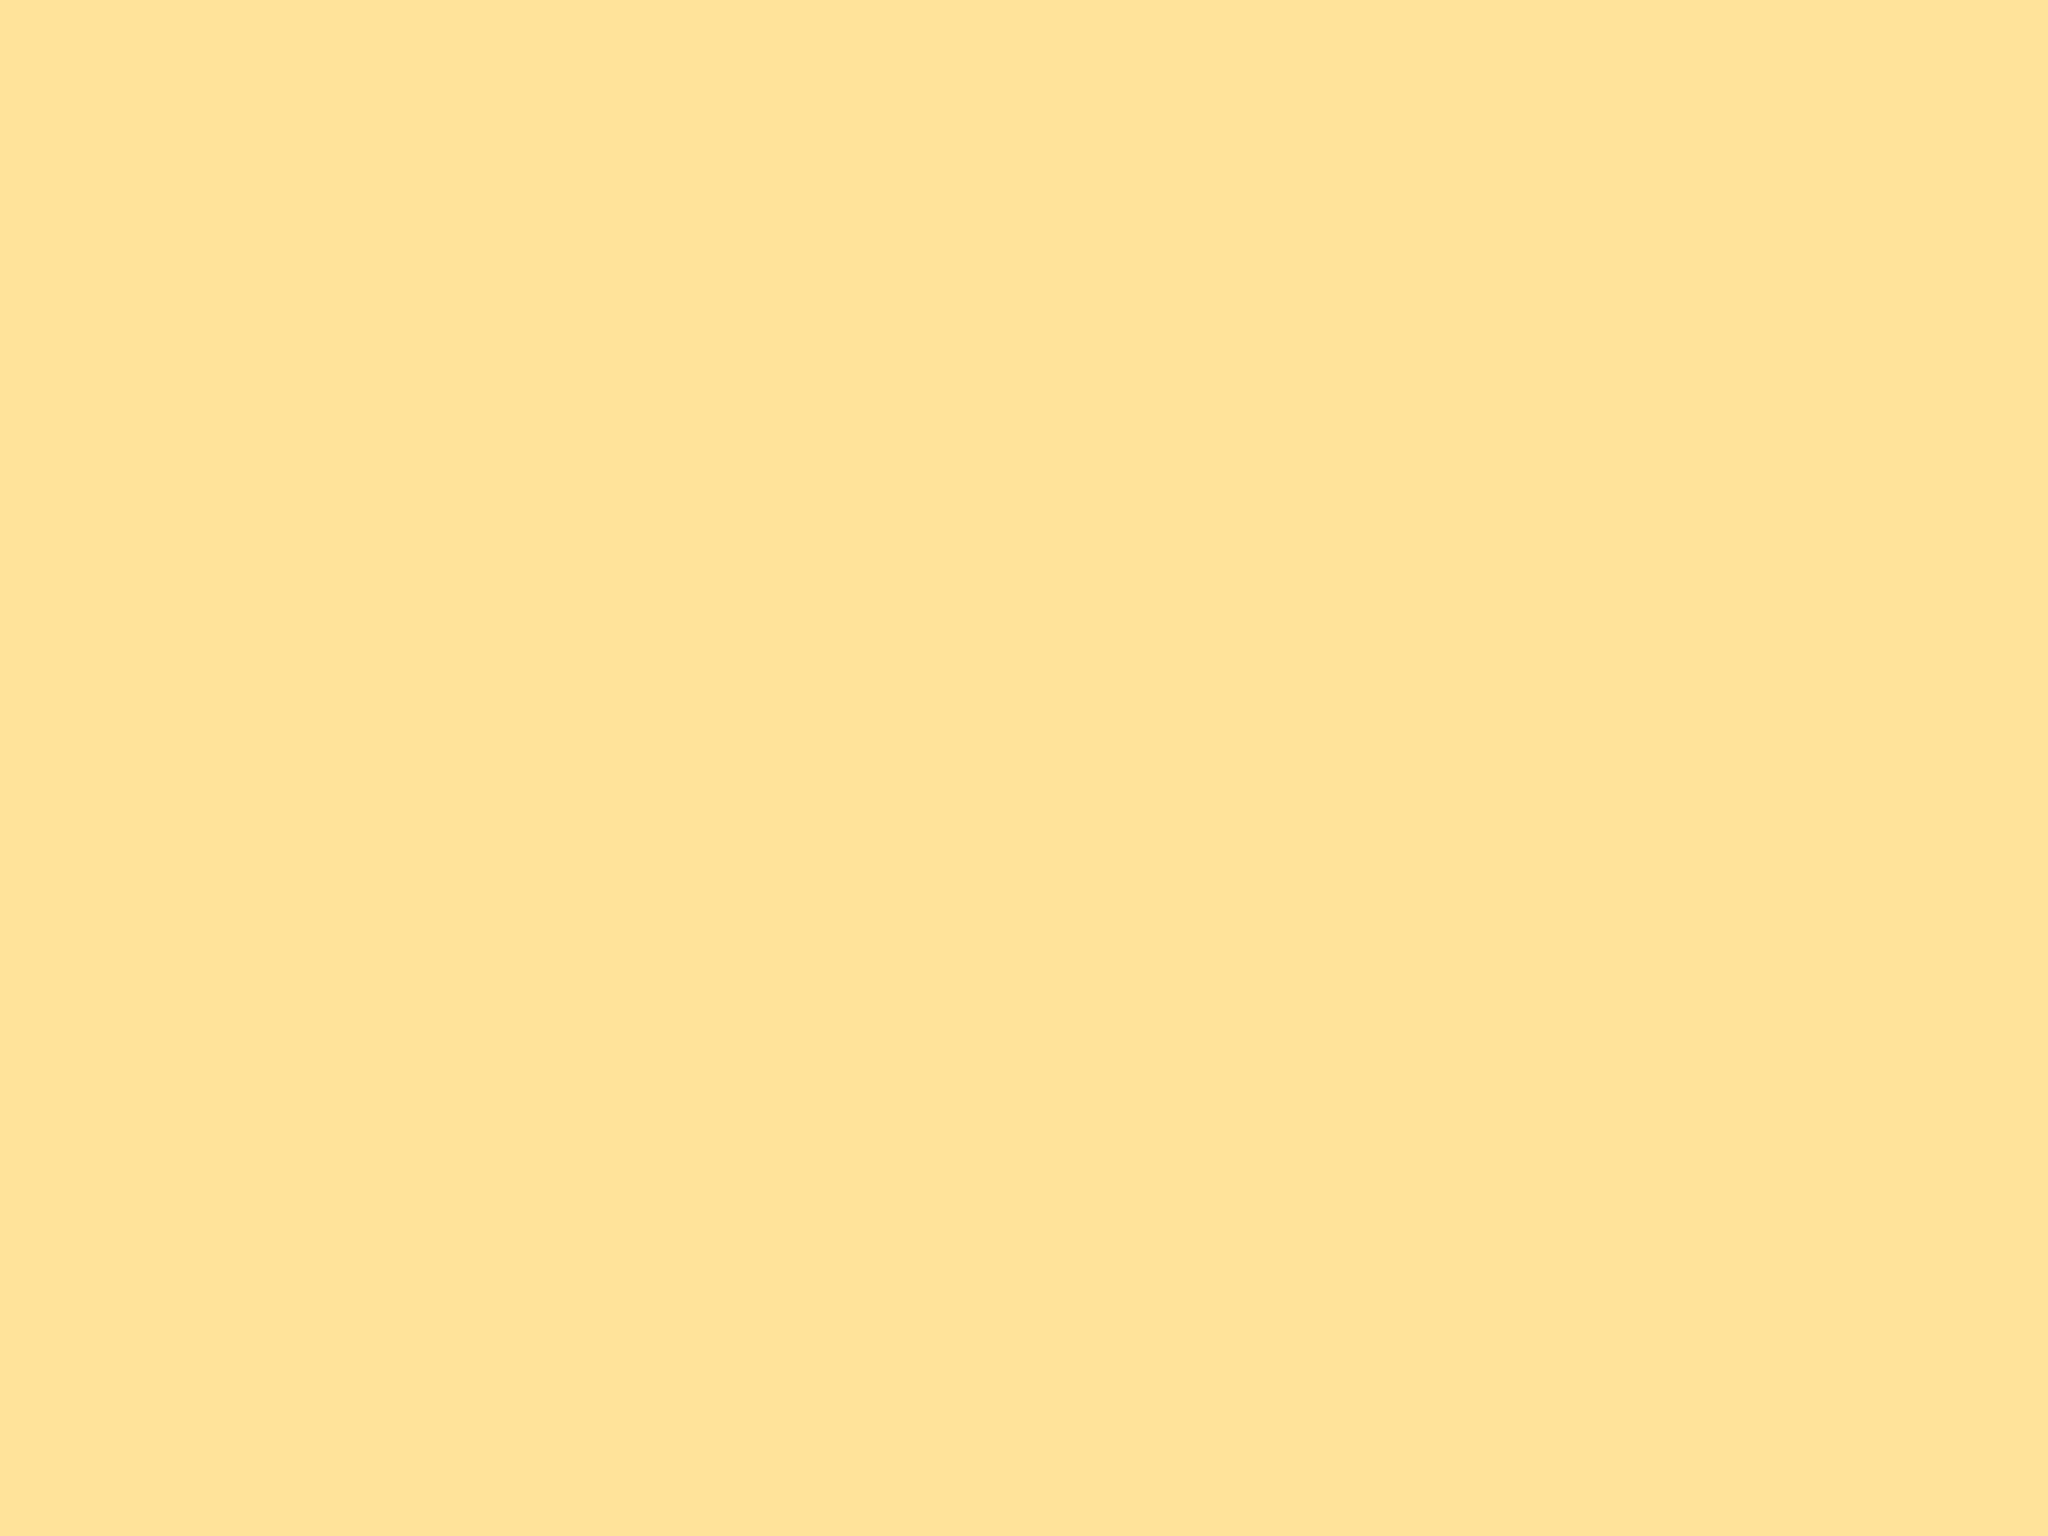 Wallpaper Iphone Pastel Cream Colored Backgrounds 183 ①